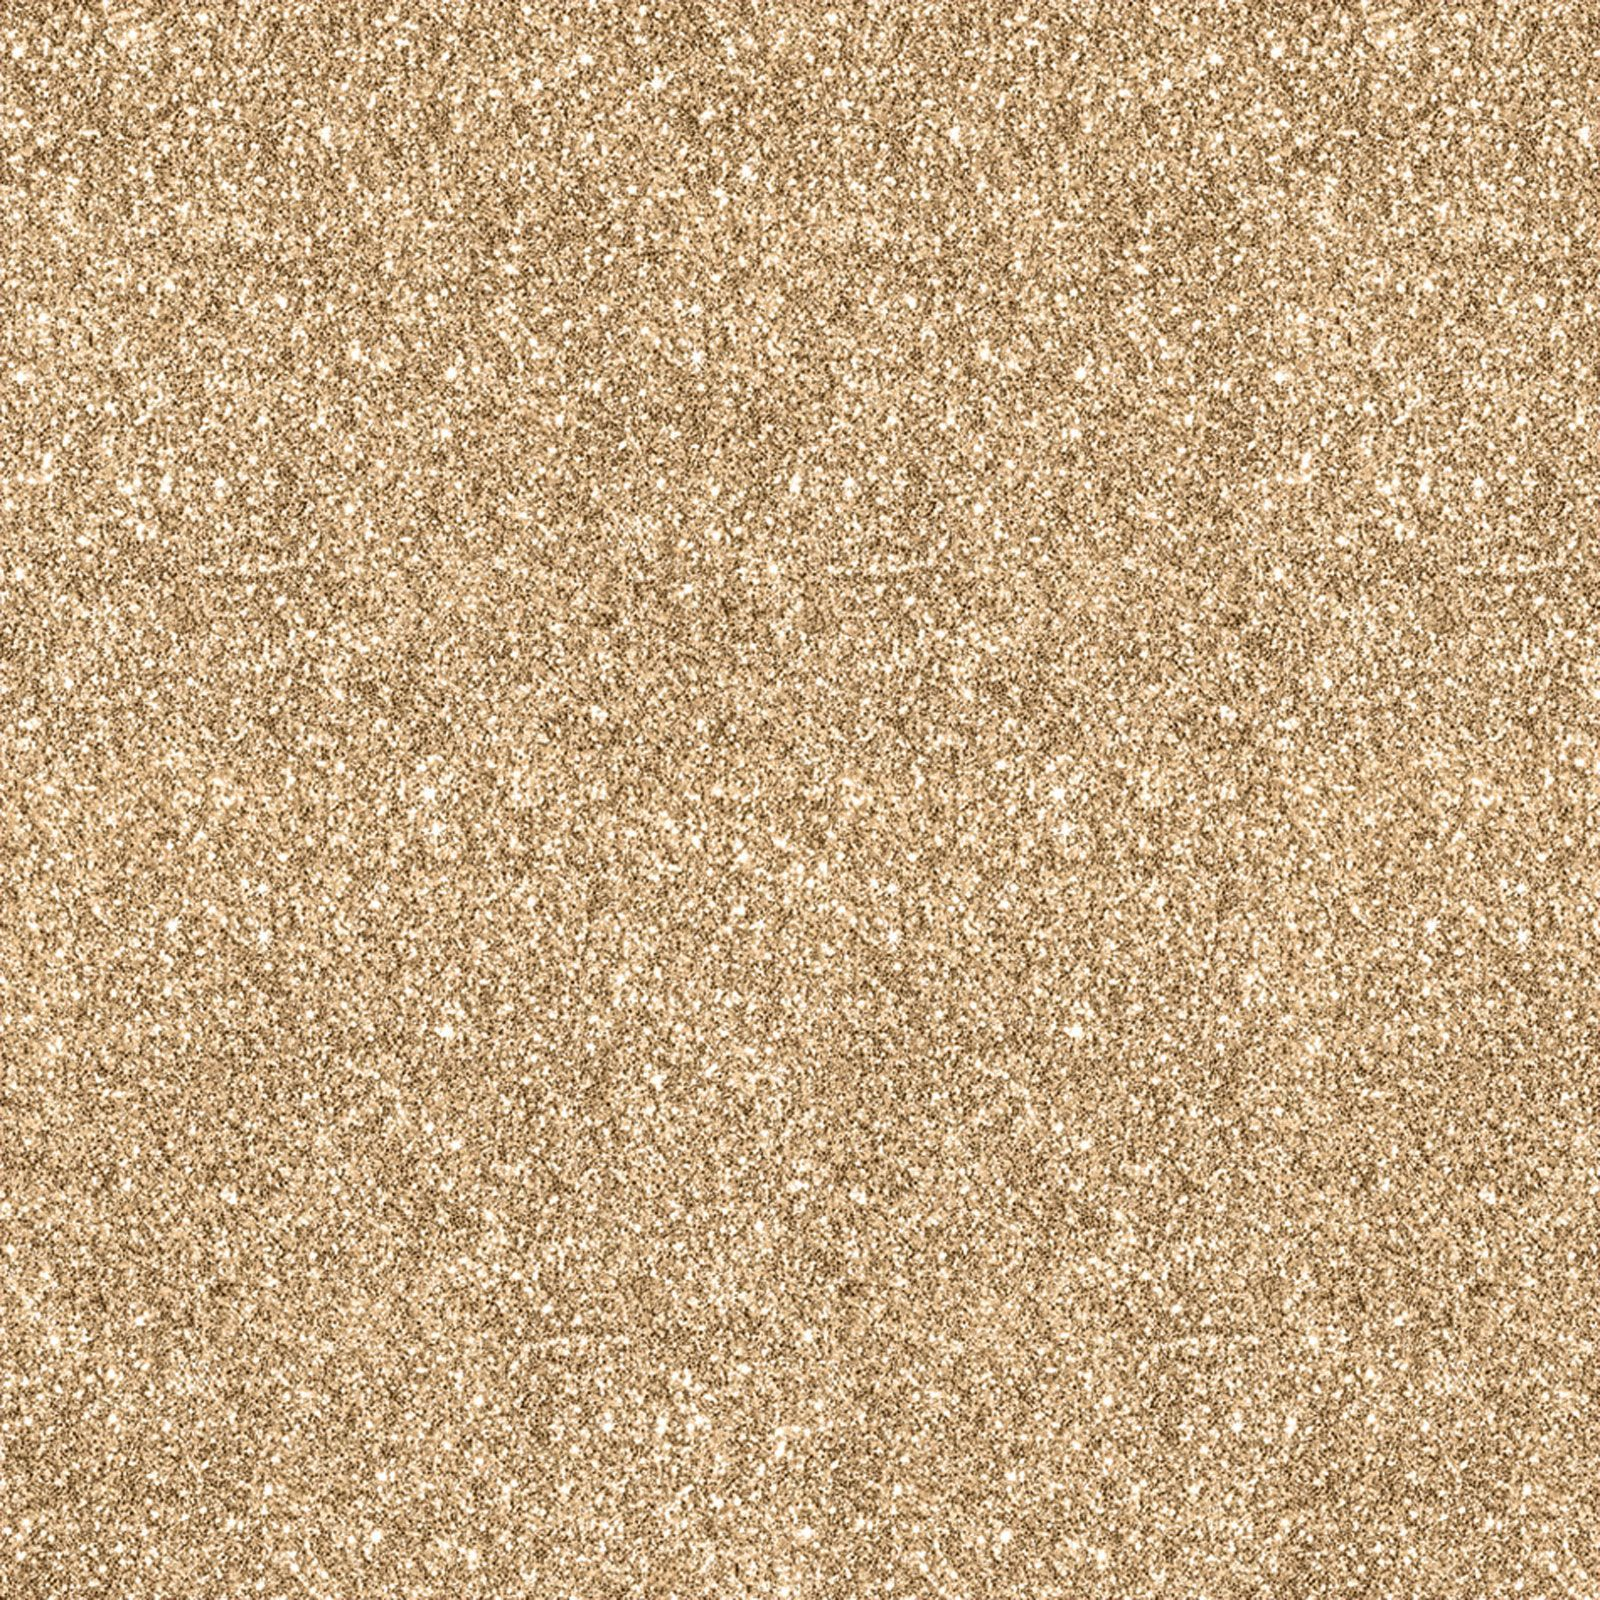 SPARKLE-GLITTER-WALLPAPER-IDEAL-FOR-FEATURE-WALLS-PINK-GOLD-SILVER ...